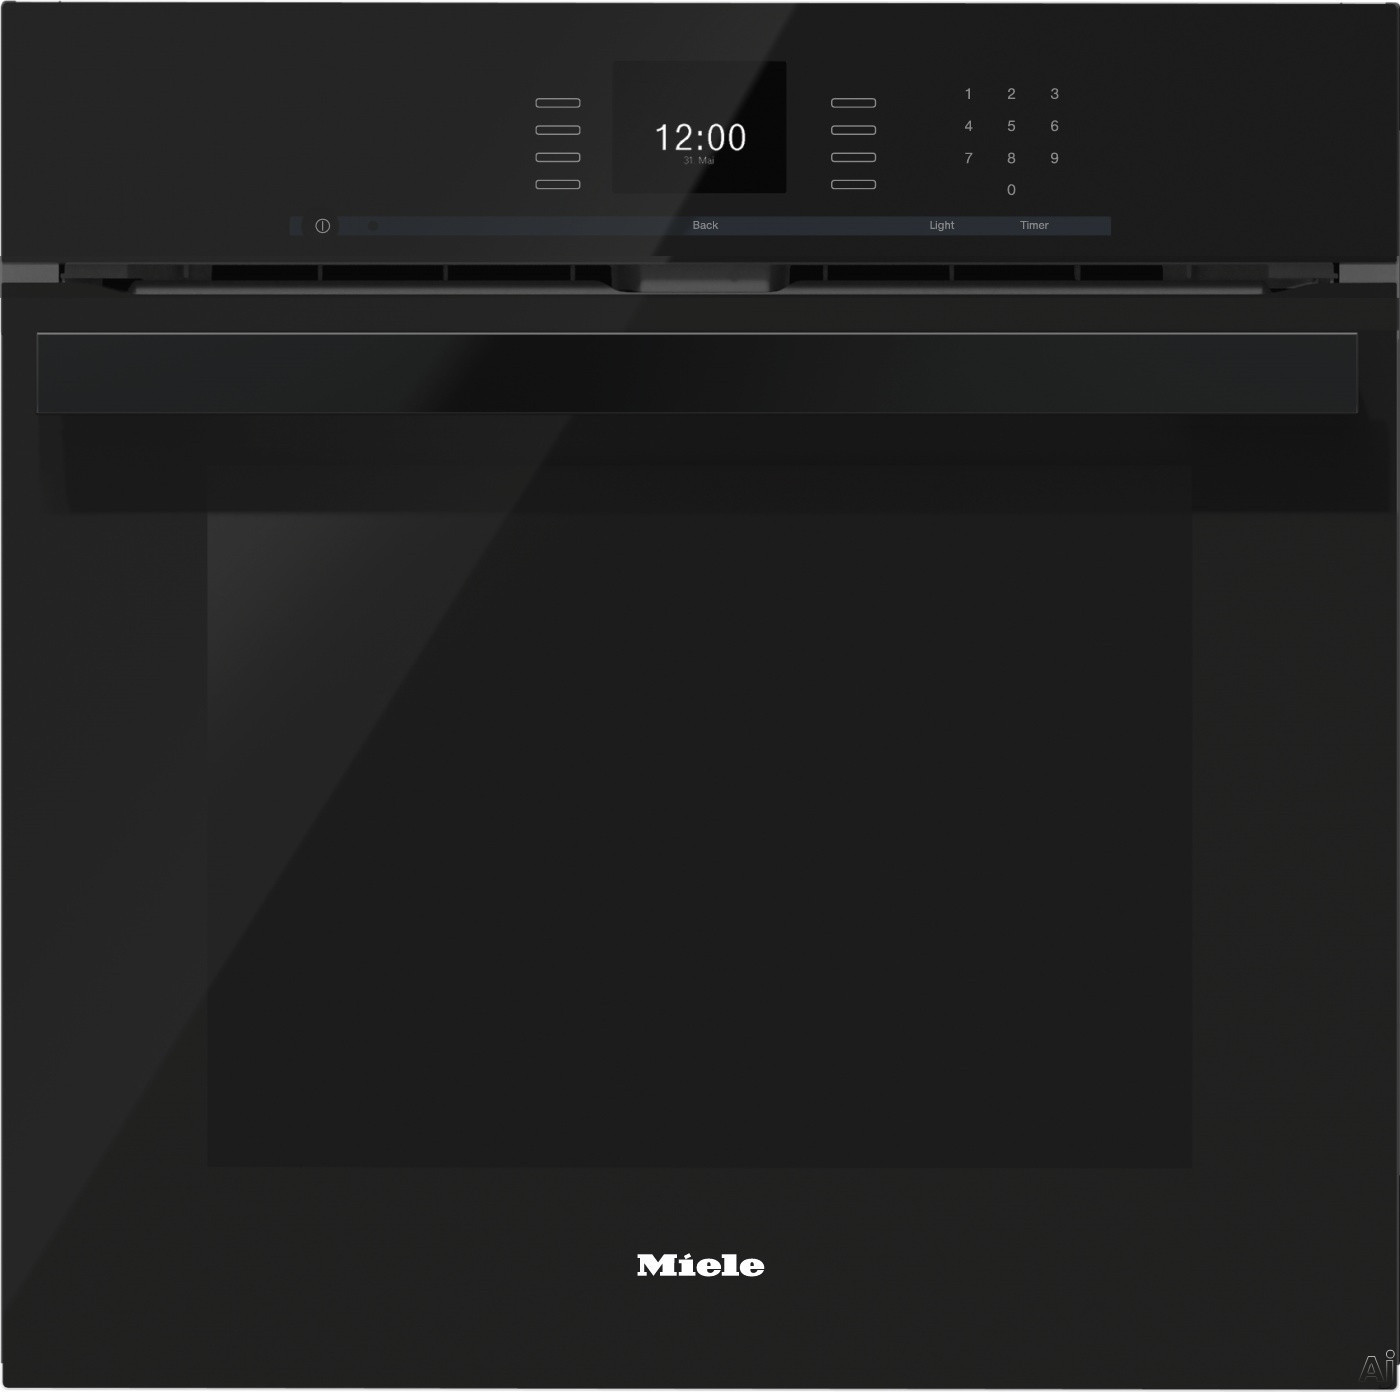 Miele H6660bpobsw 24 Inch Single Electric Wall Oven With Convection Cooking Self Cleaning Mode Sensortronic Controls Masterchef Programs Temperature Probe Perfectclean Finish And Silhouette Handle Obsidian Black